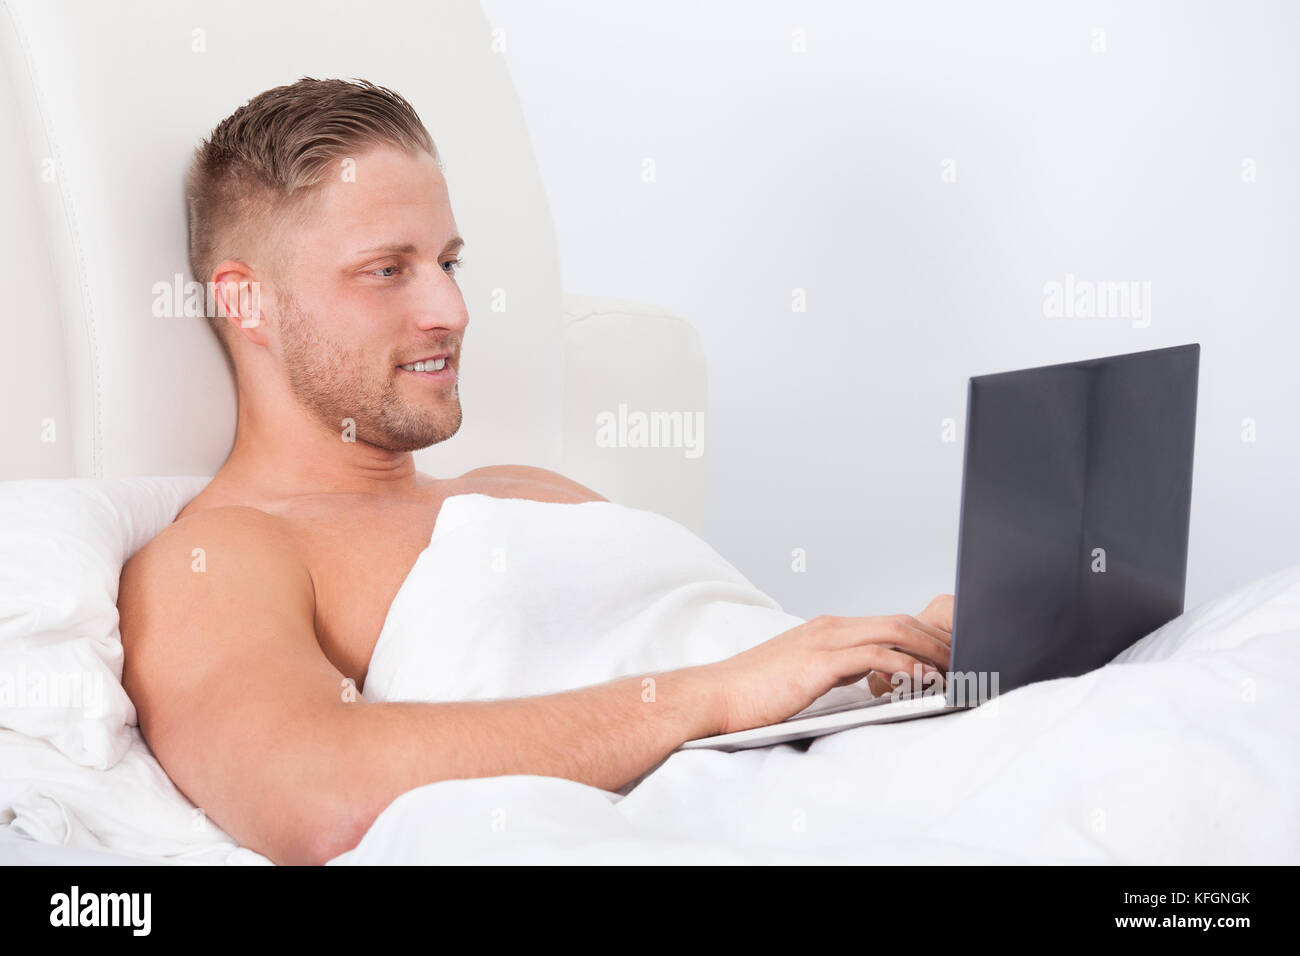 Pillow For Sitting Up In Bed Propped Up Person Stock Photos And Propped Up Person Stock